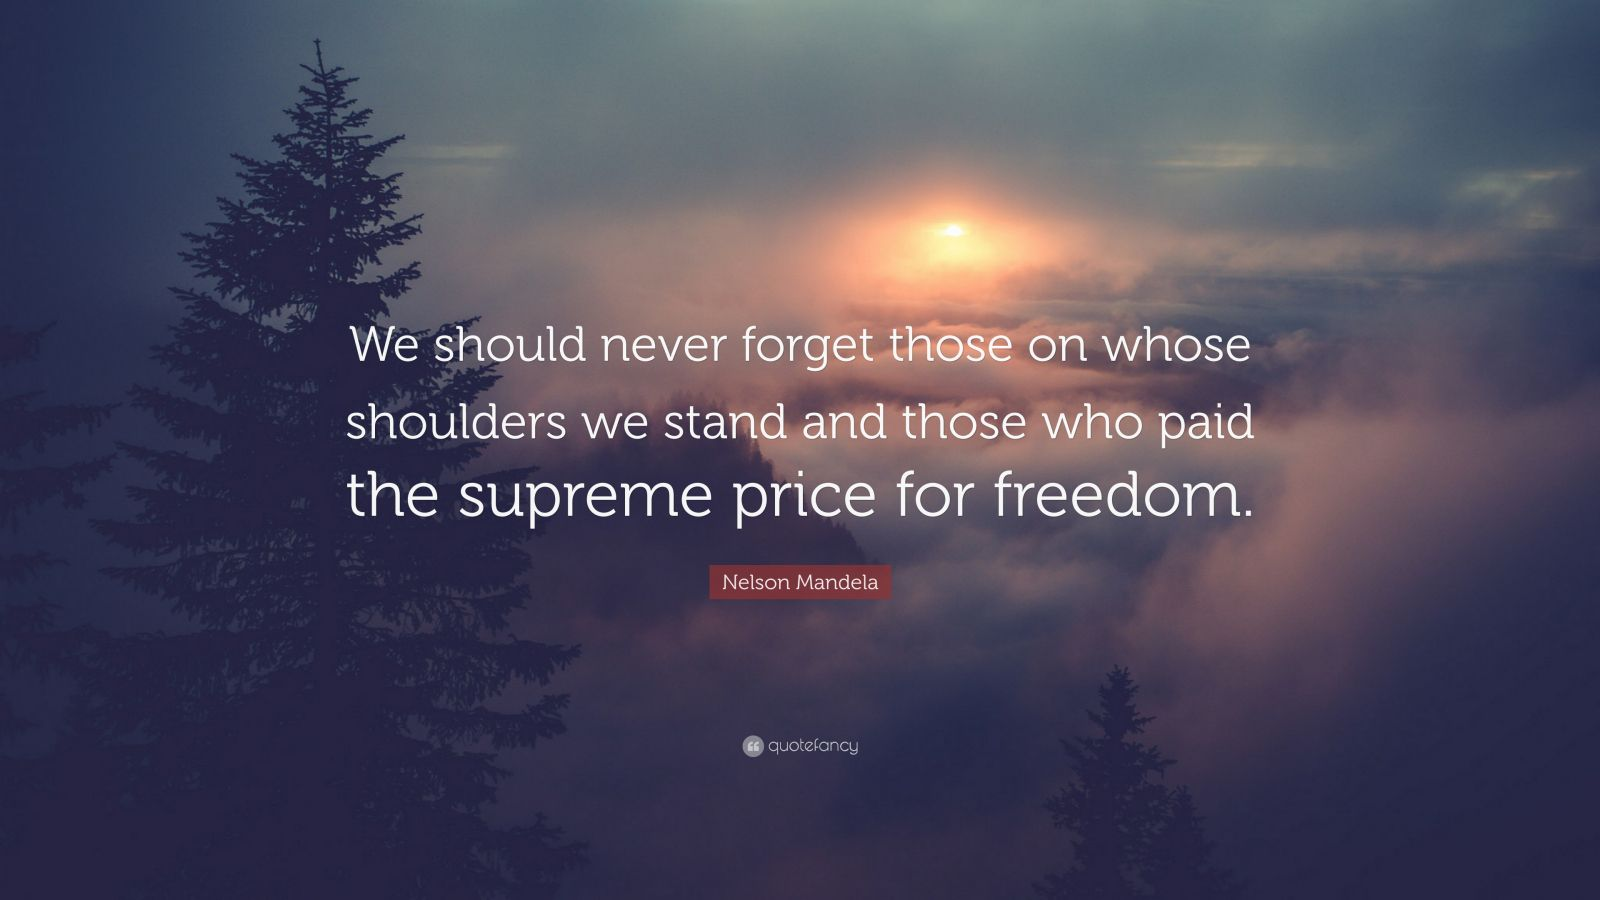 """Nelson Mandela Quote: """"We should never forget those on whose shoulders we stand and those who paid the supreme price for freedom."""""""